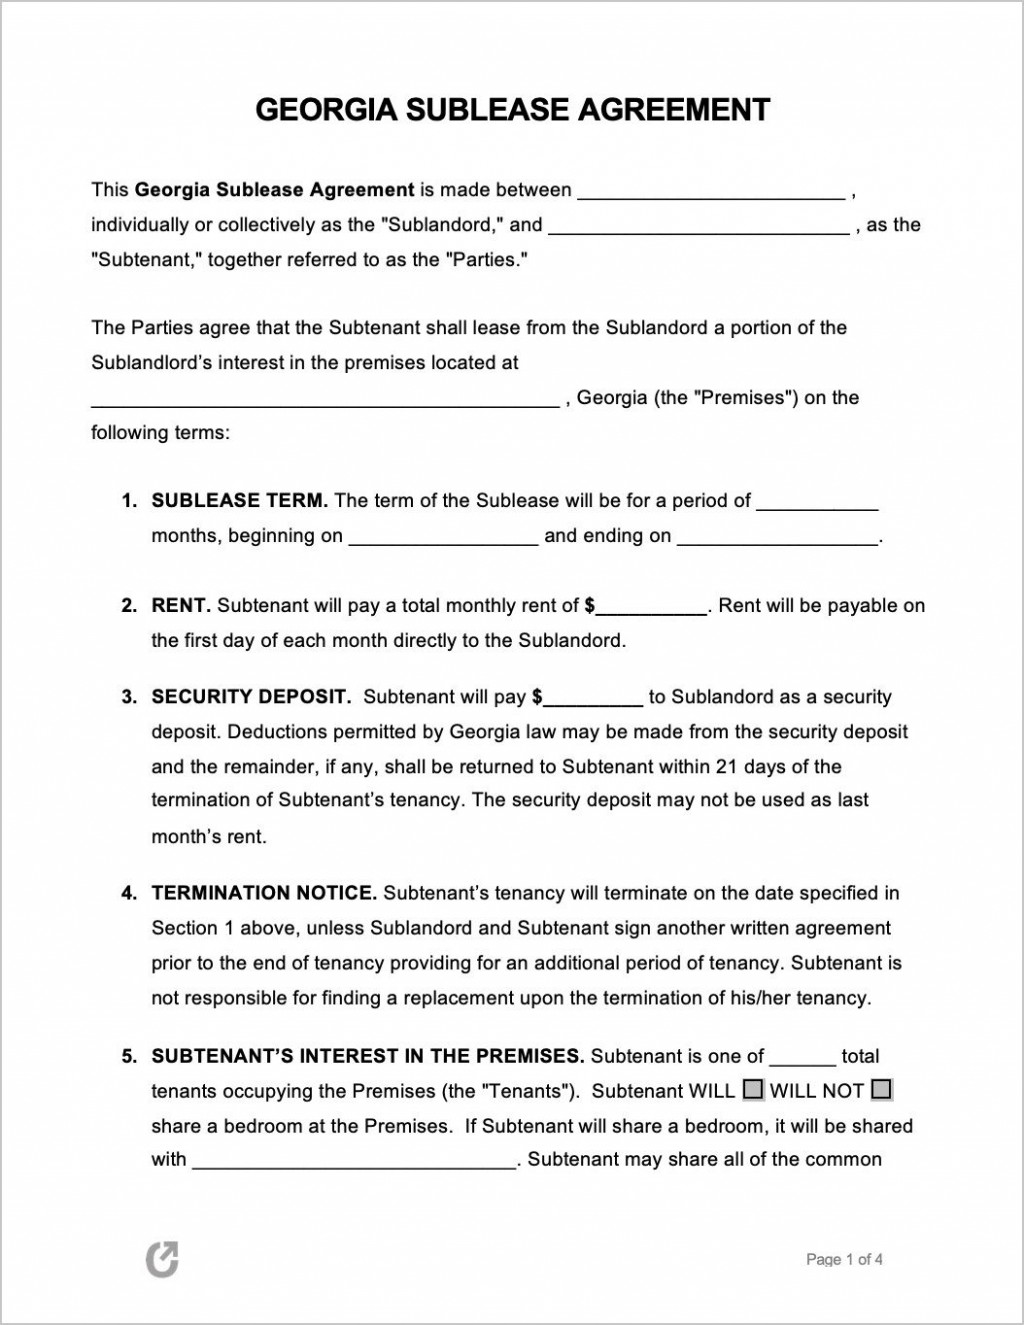 004 Unusual Free Sublease Agreement Template High Resolution  Lease Word South AfricaLarge